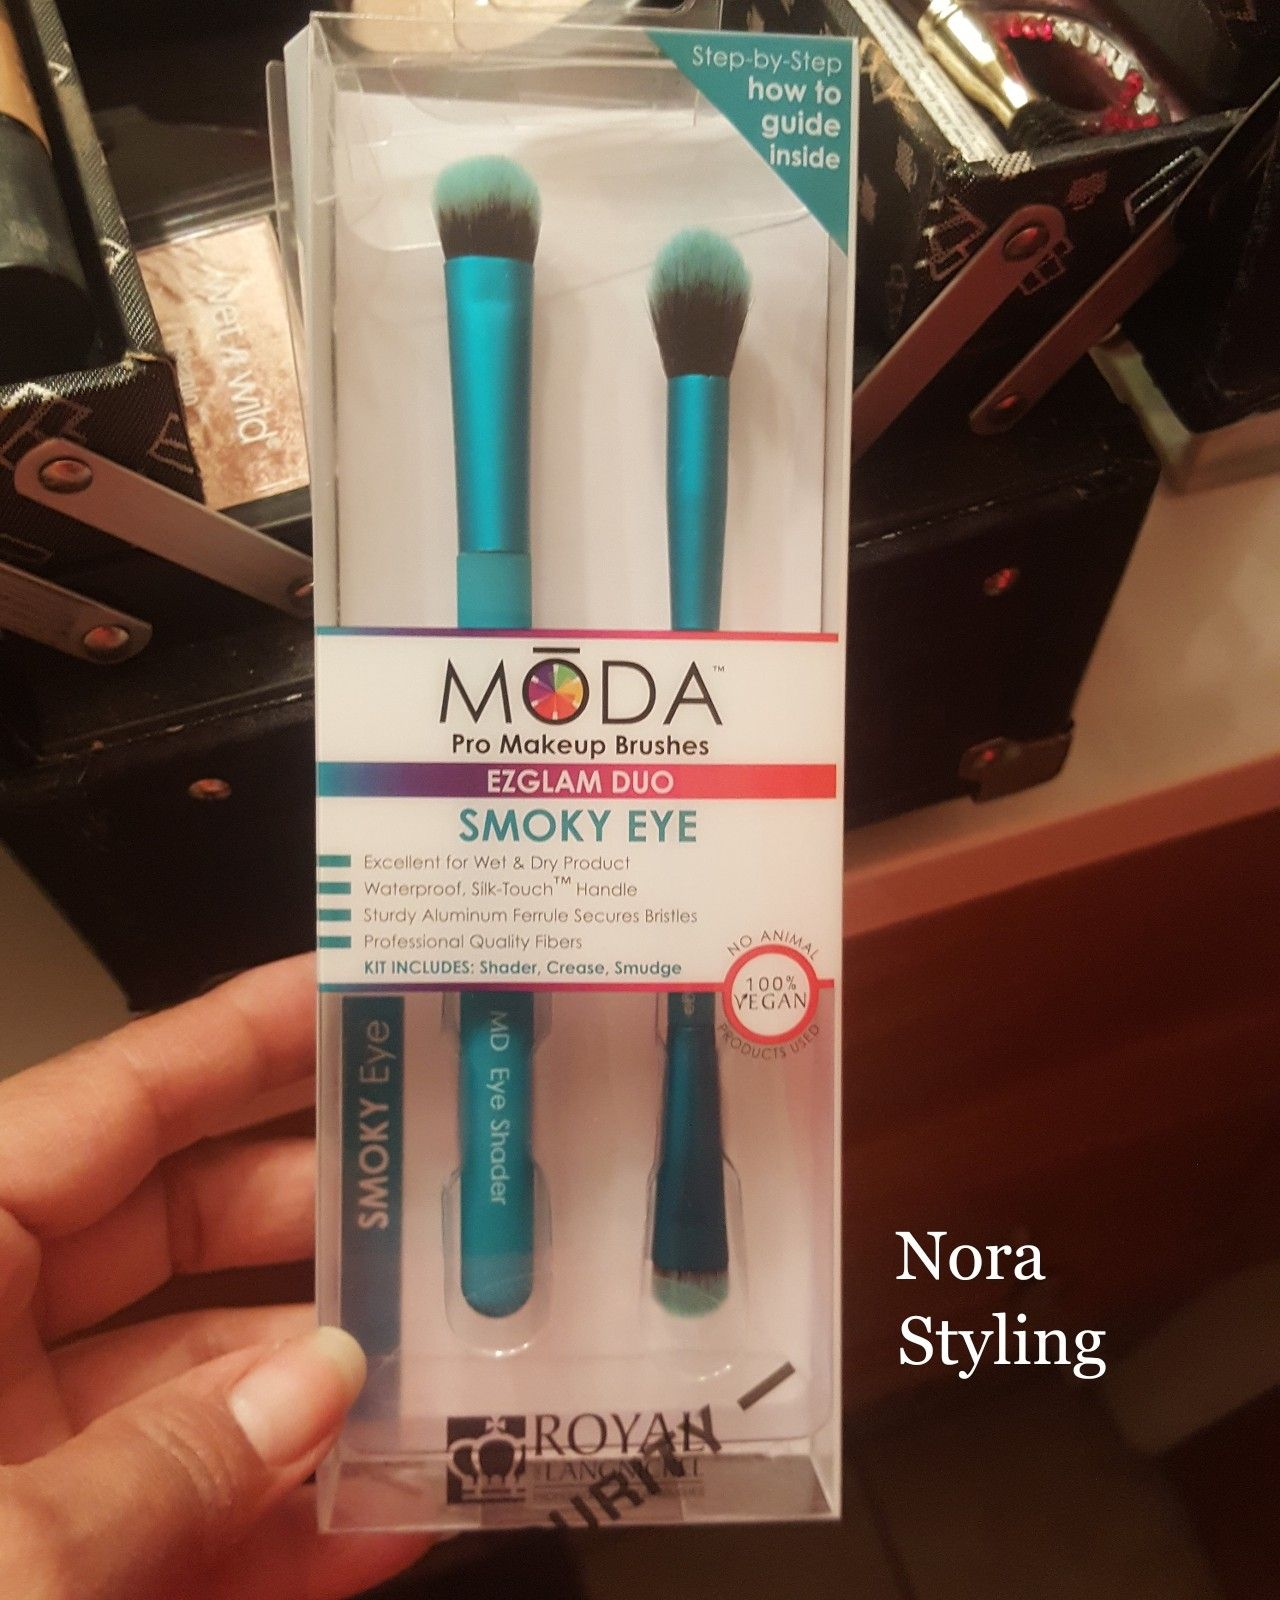 Beauty Find At Ross Dress For Less Moda Smoky Eye Brush Set Blends Eyeshadows Nicely Eye Brushes Set Makeup Brushes Makeup Brush Set Best